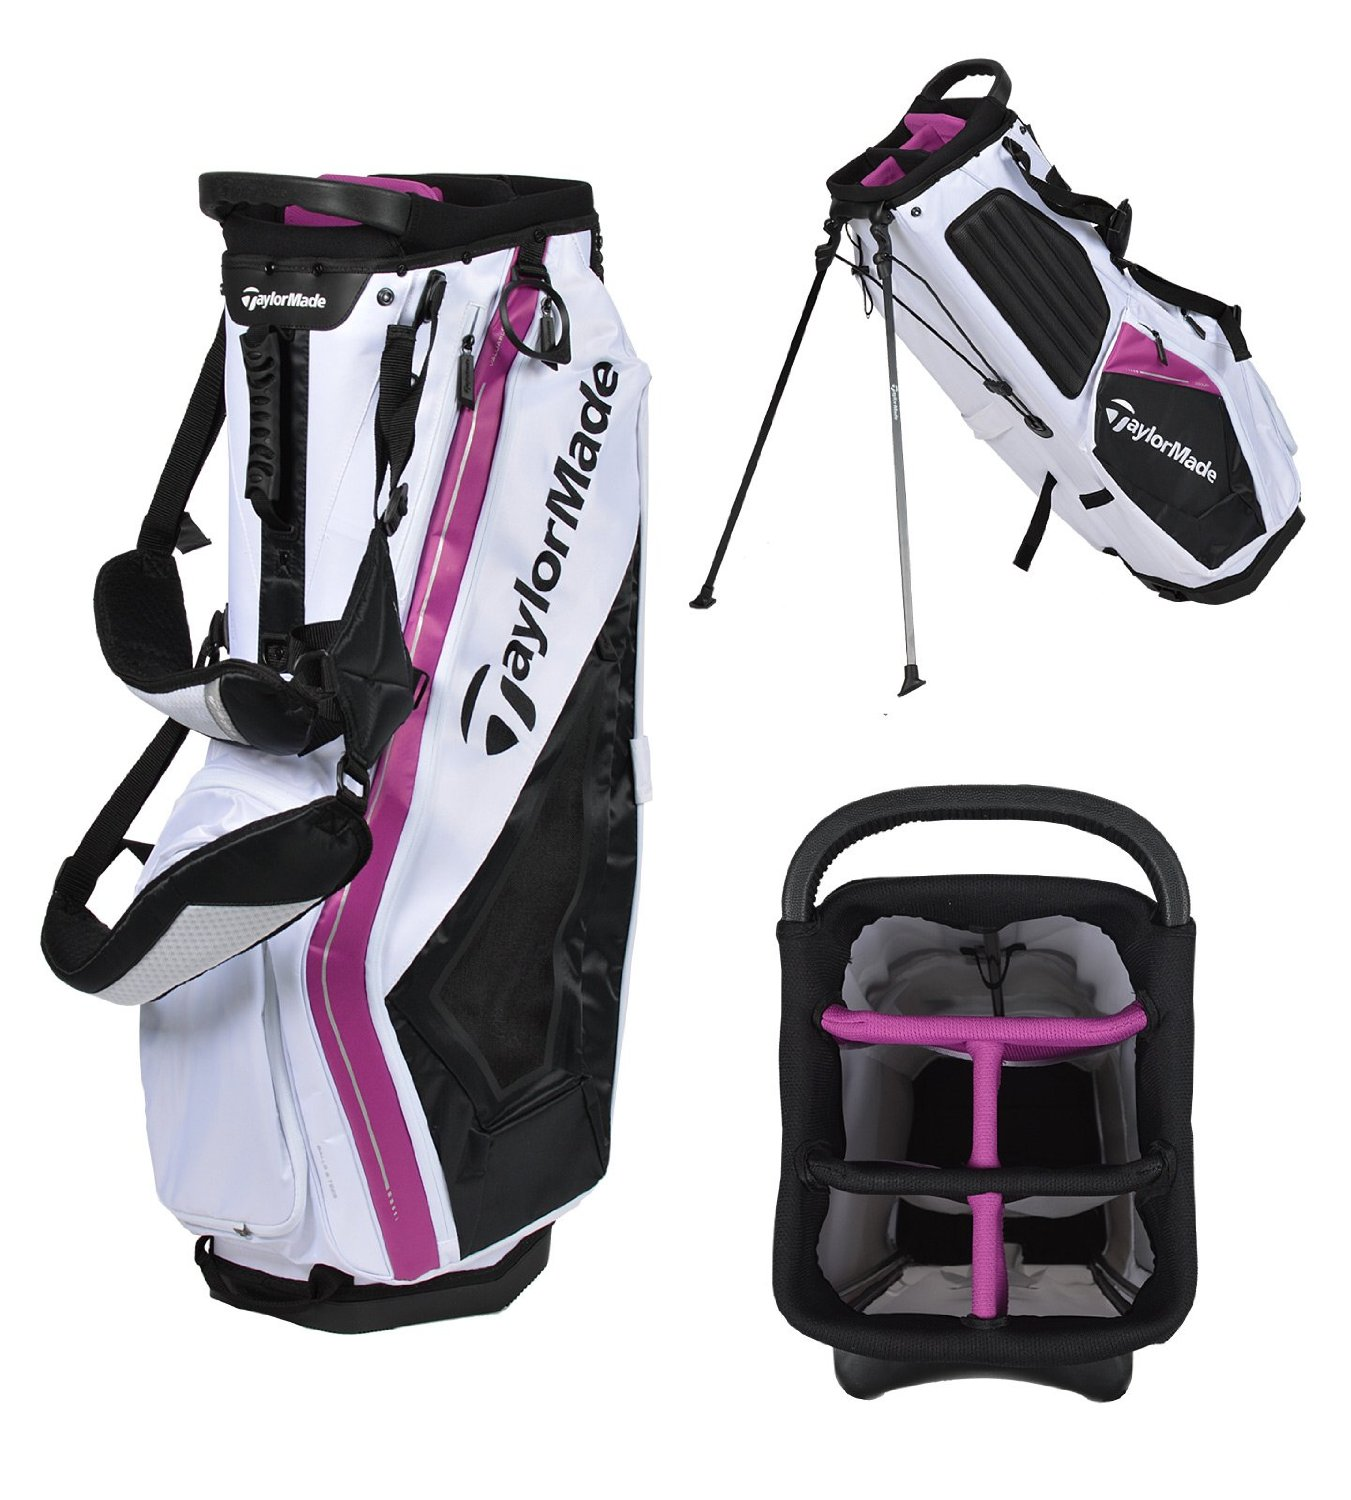 Mens Taylormade Purelite Golf Stand Bags